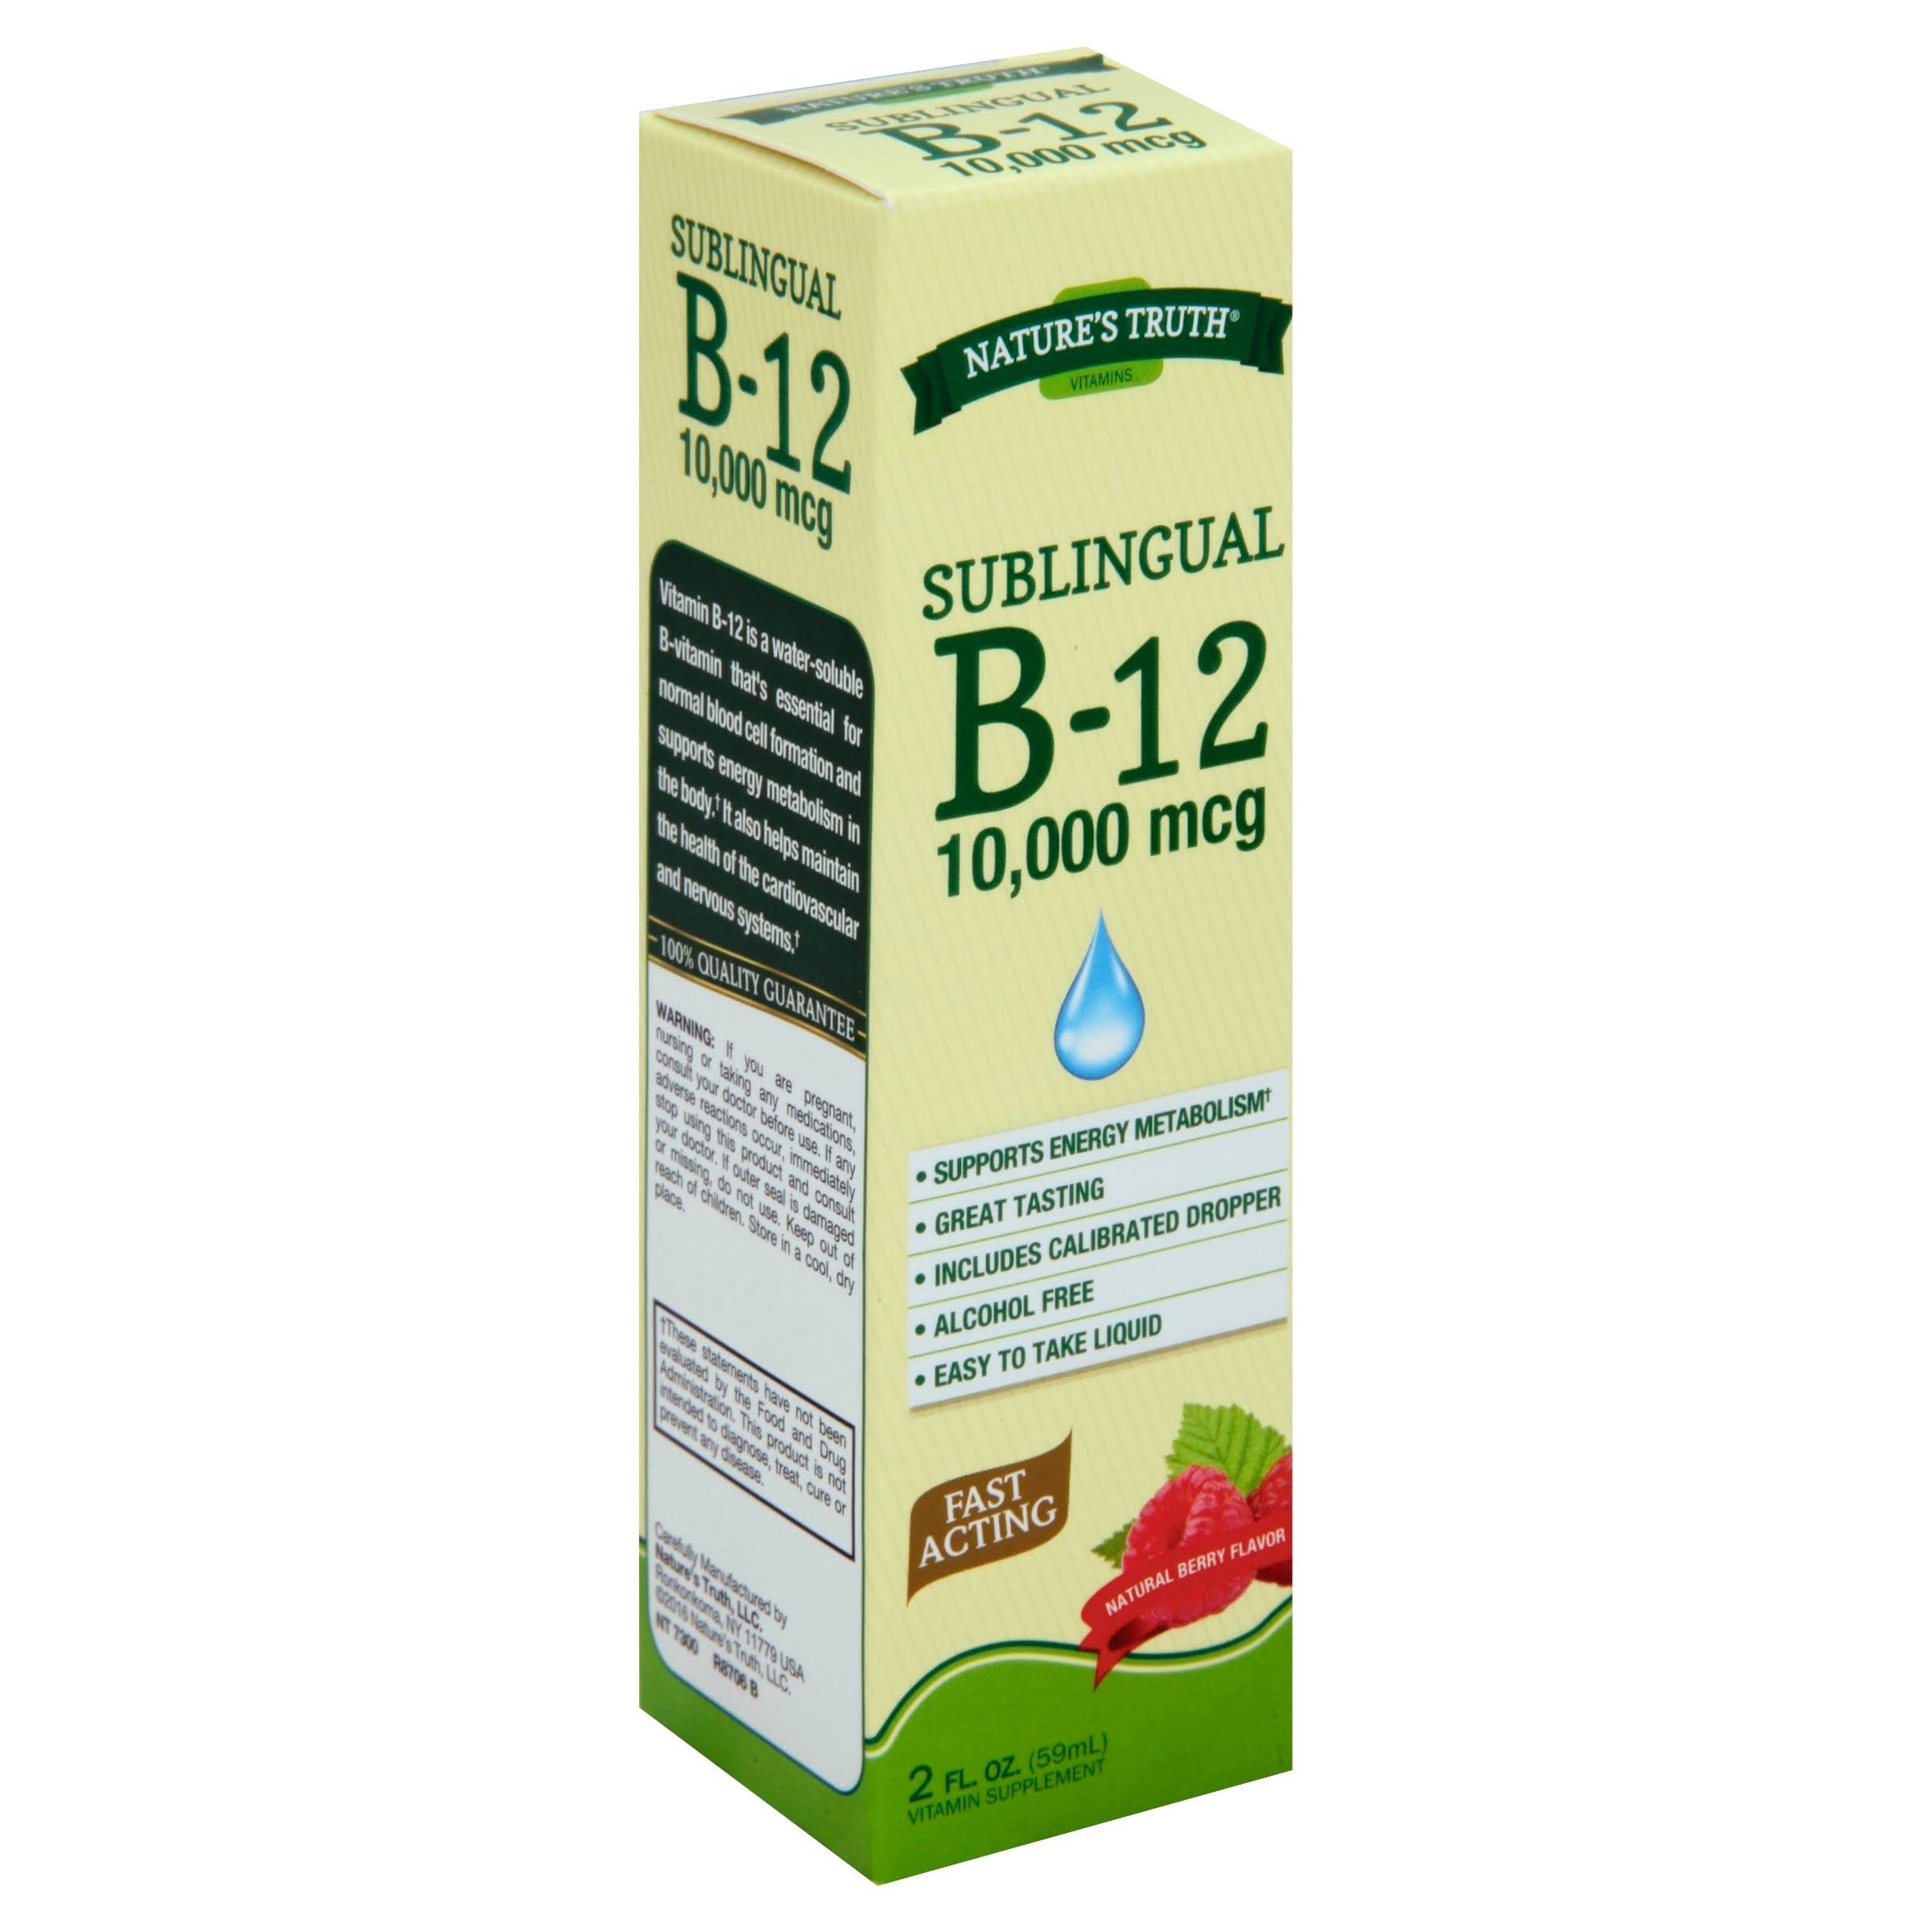 Nature's Truth Sublingual B-12 Vitamin - Fast Acting Liquid, Natural Berry Flavour, 2oz